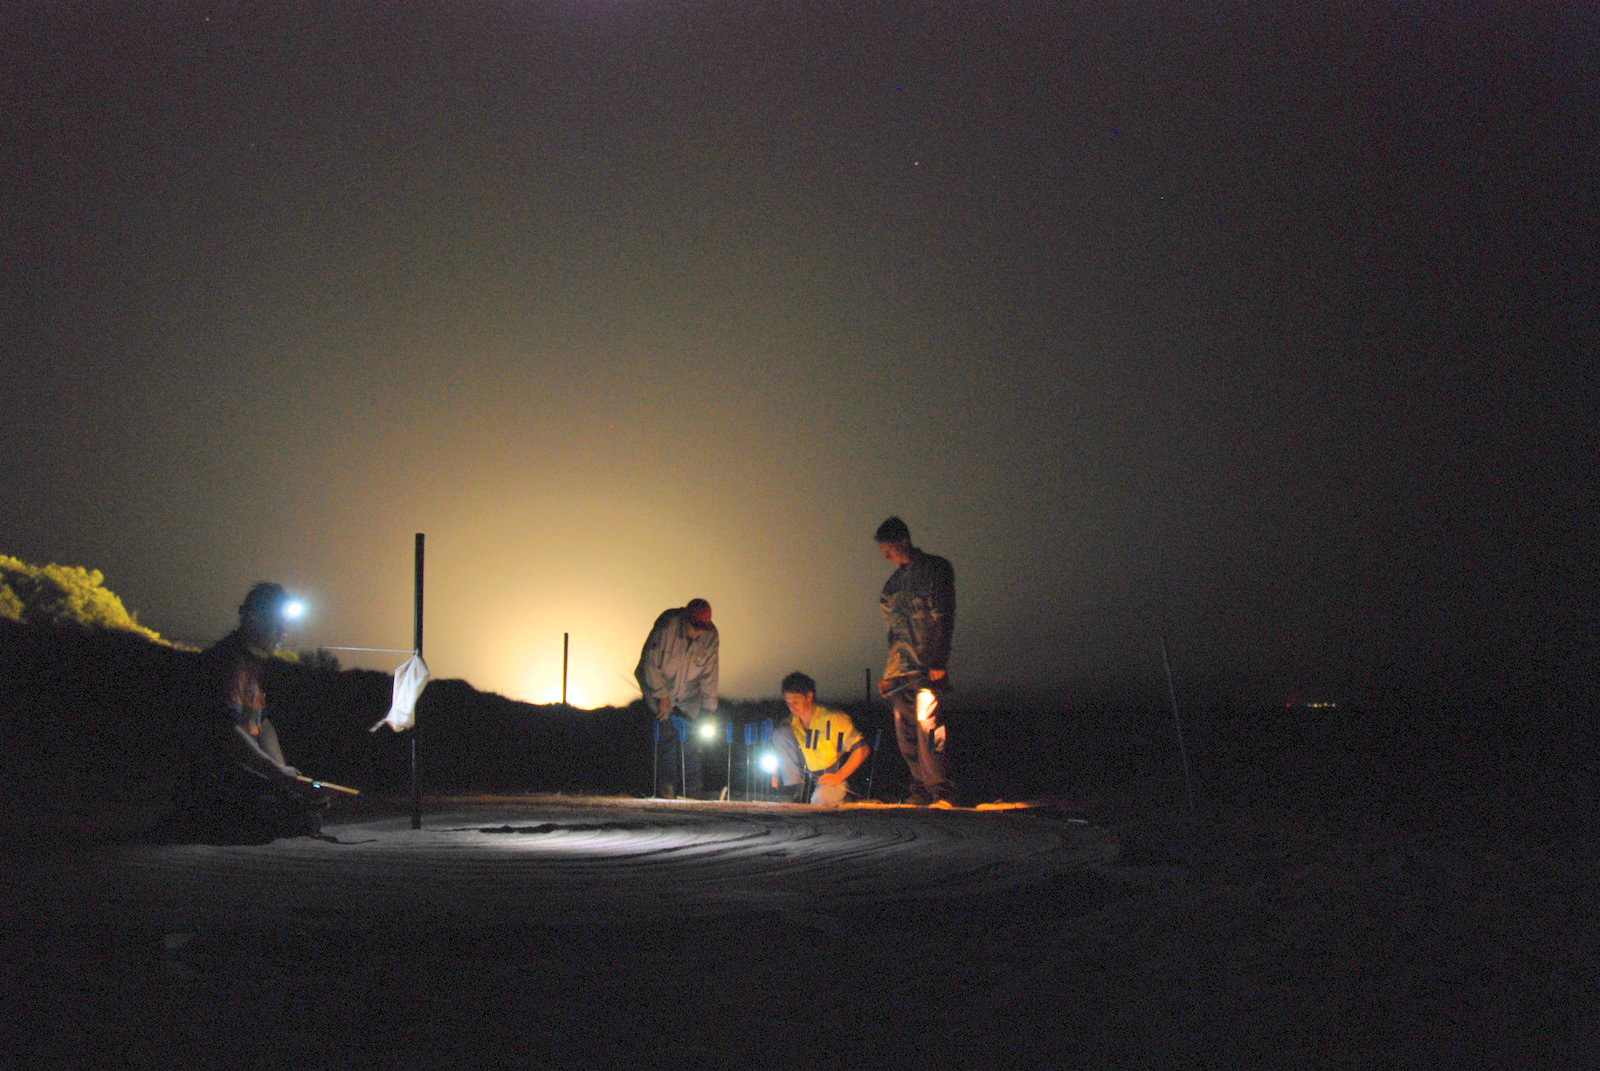 Field assistants test the orientation of hatchling flatback turtles in the presence of lights typically used by industry and in urban areas. The data from the study, which was conducted on Barrow Island, Australia, were used to establish a baseline to inform the Chevron Gorgon gas project. © Kellie Pendoley